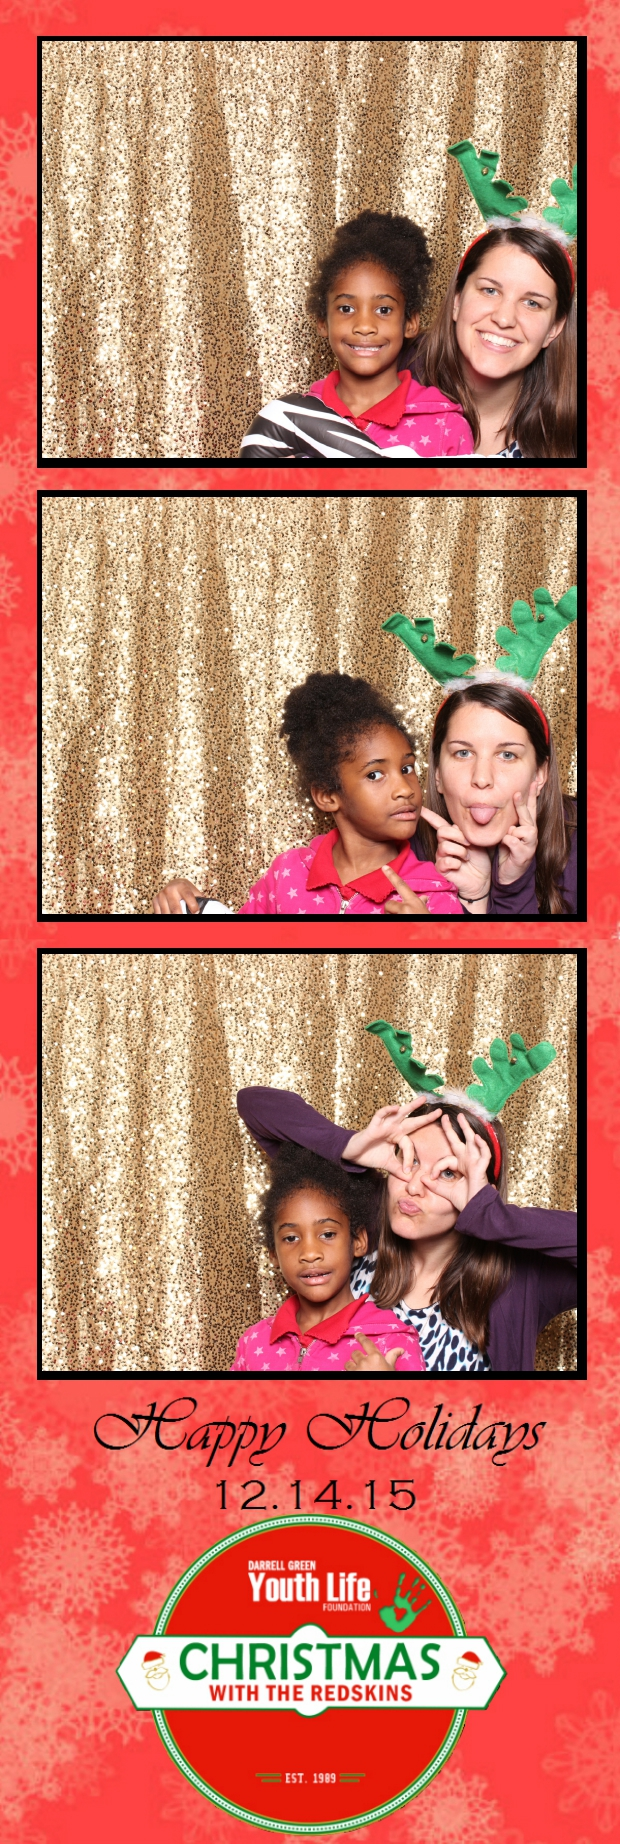 Guest House Events Photo Booth DGYLF Strips (43).jpg